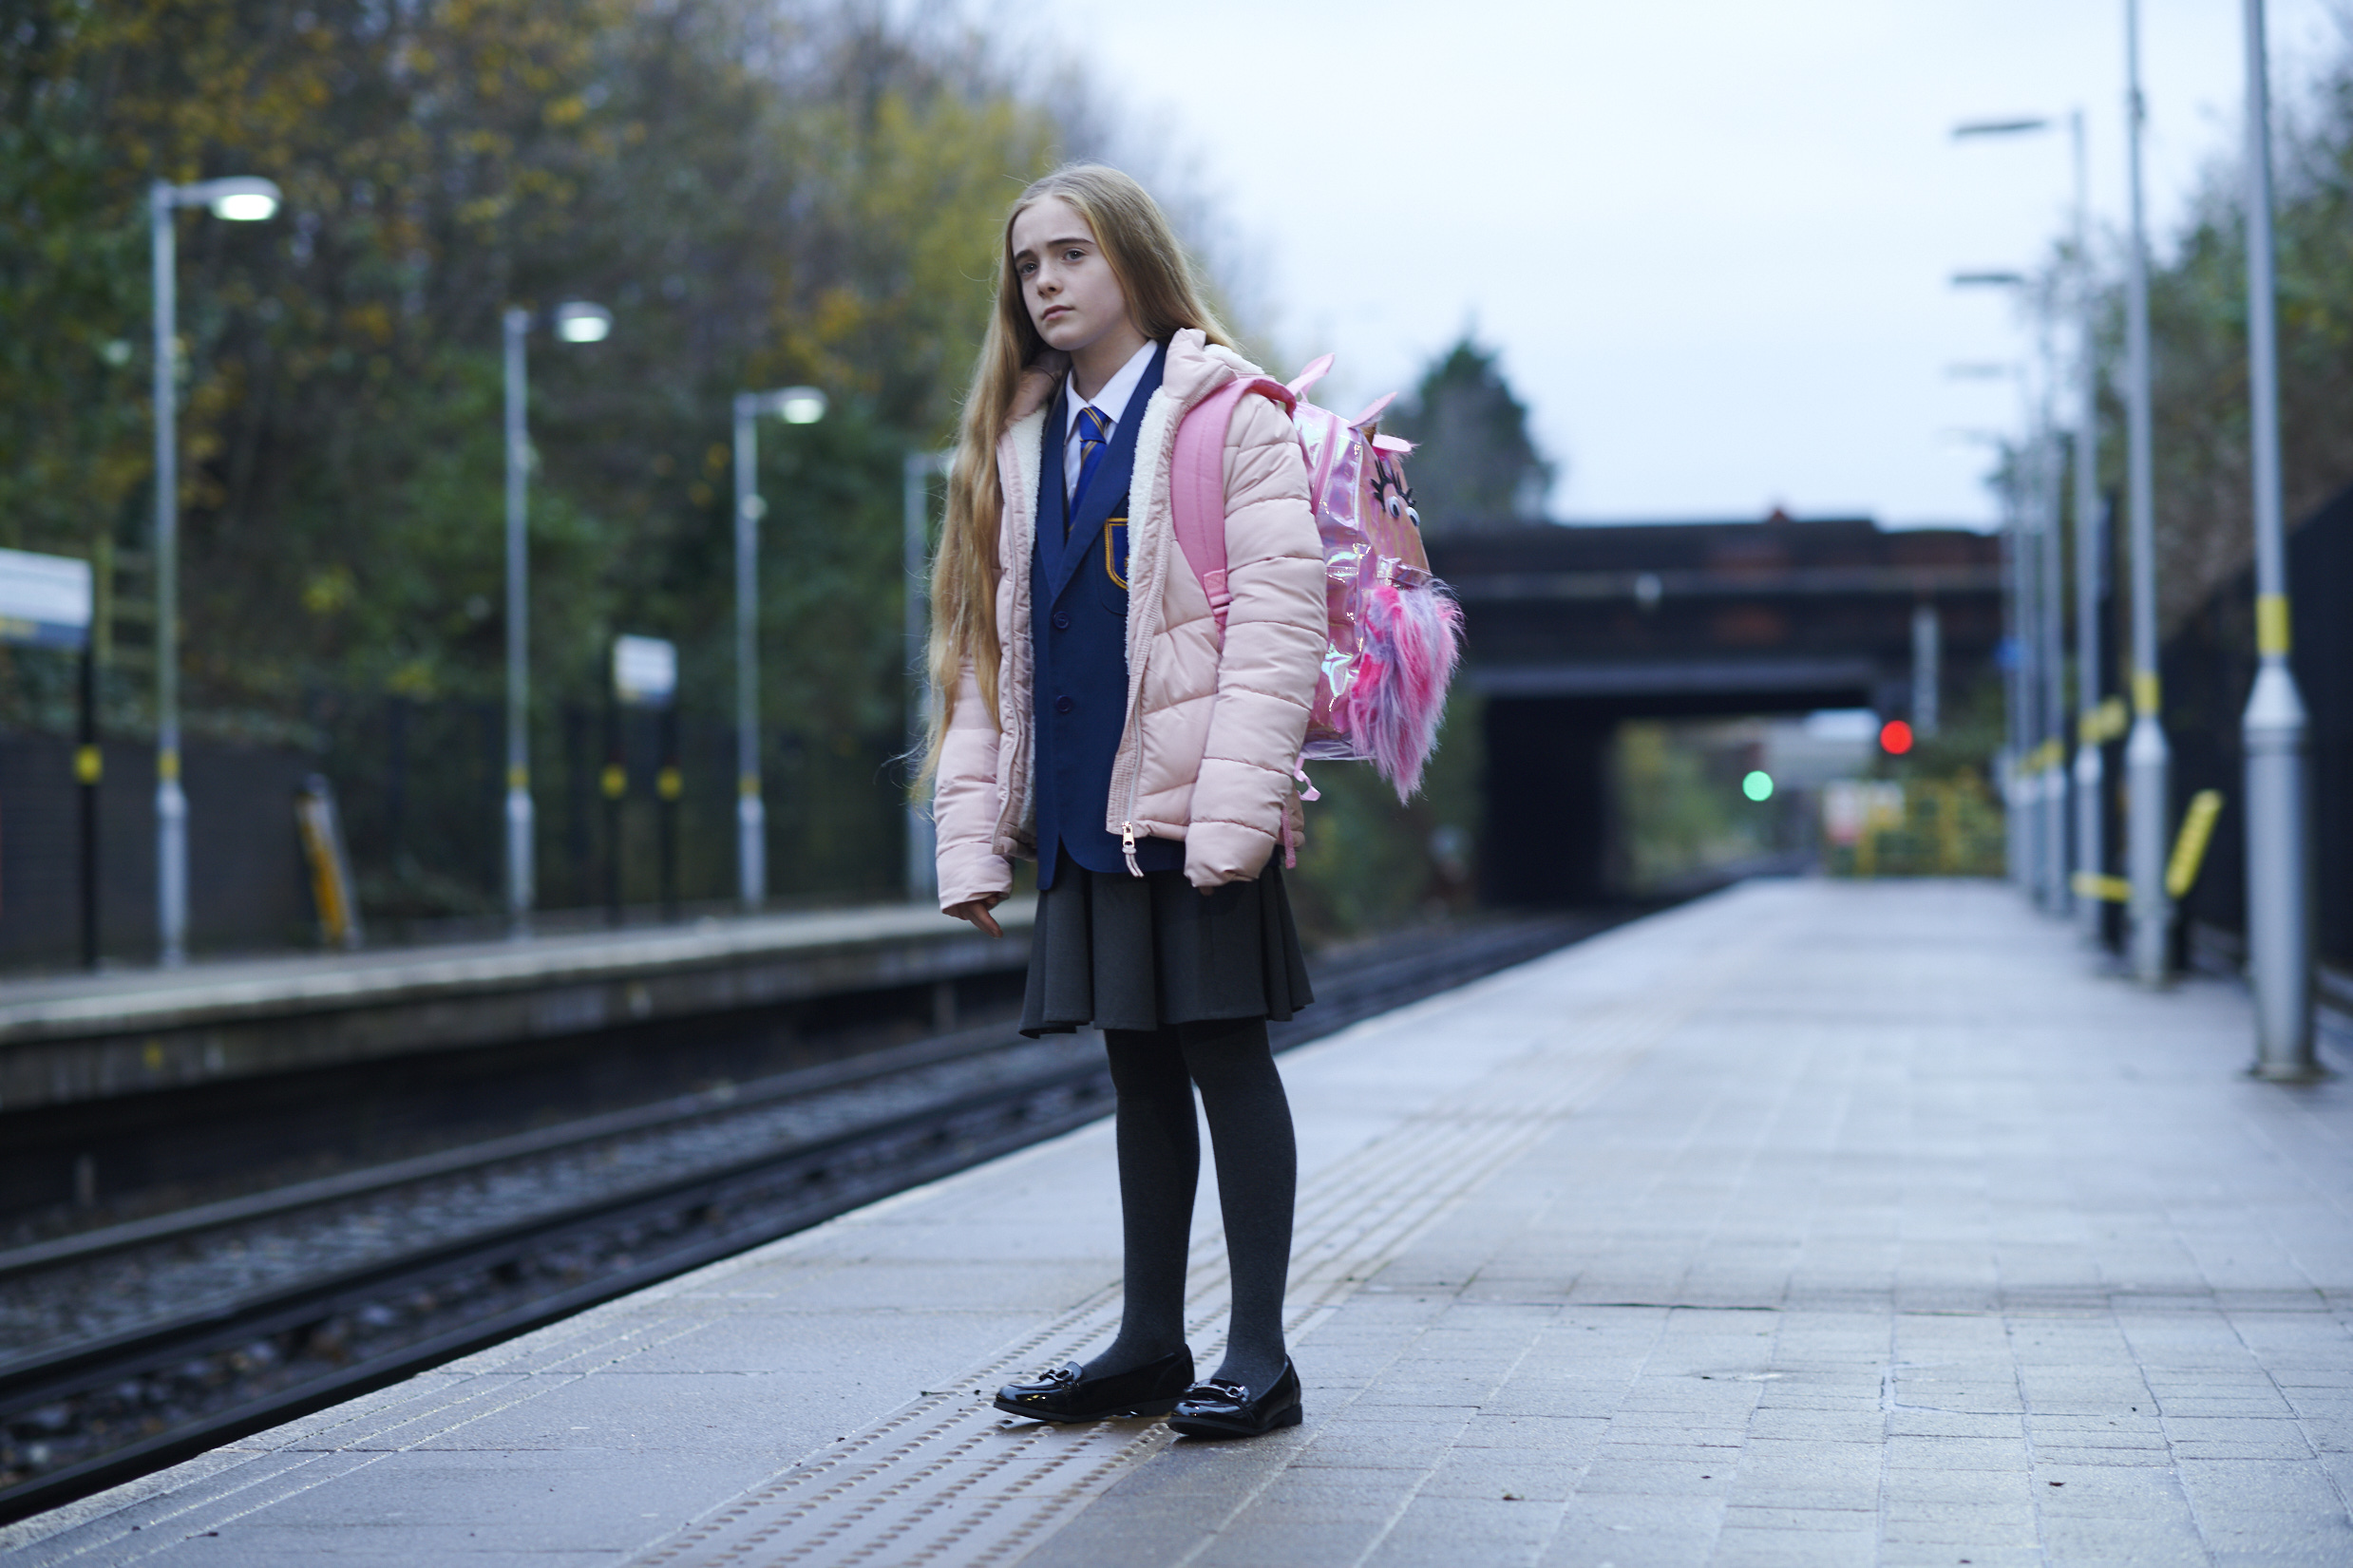 HOLLYOAKS EXPLORE THE ISSUE OF COUNTY-LINES